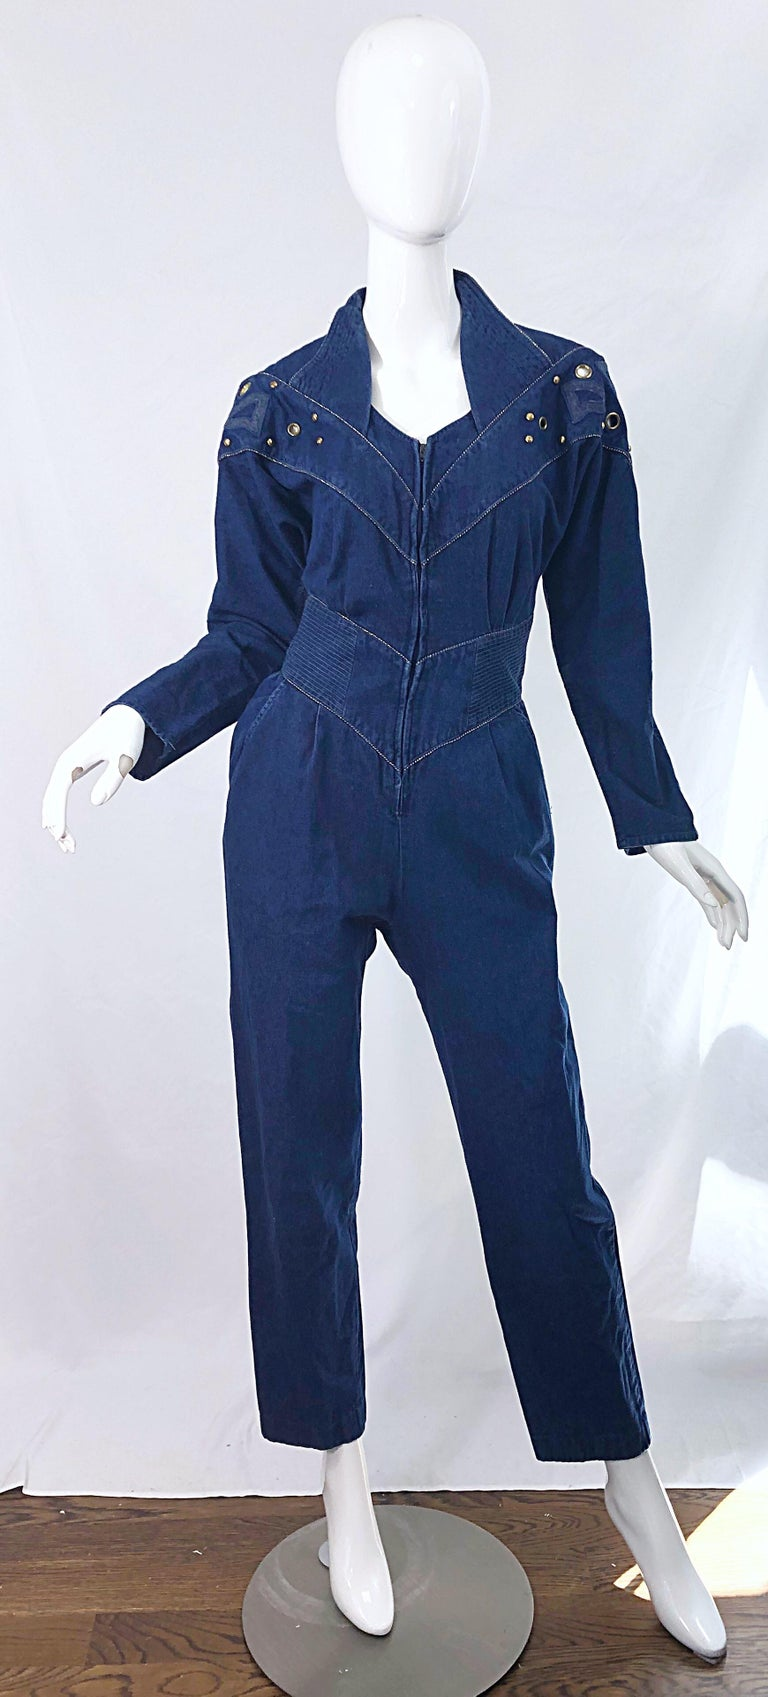 Avant Garde JILLIAN ARTHUR blue jean denim one piece jumpsuit ! Features gold studs and grommets along the front and back dolman sleeve bodice. Hidden zipper up the front. Pockets at each side of the hip.  Made in USA Approximately Size Medium /